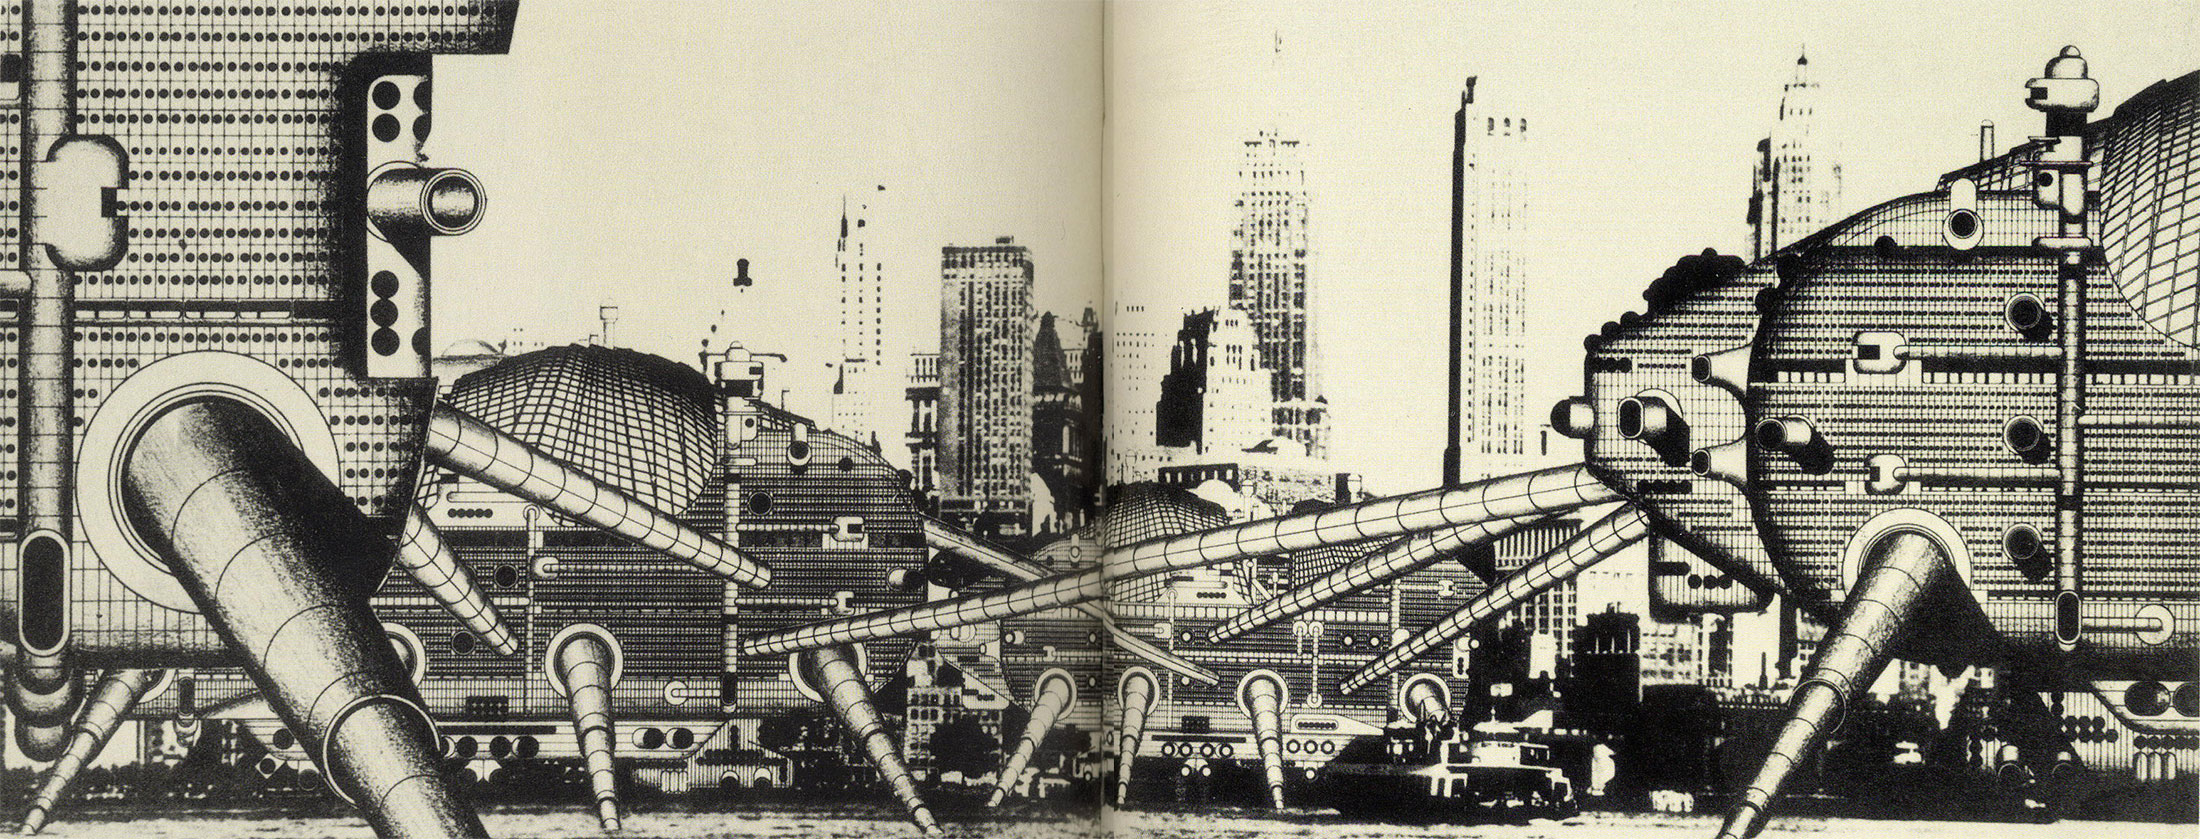 Ron-Herron-cities-moving-1964-archigram-02